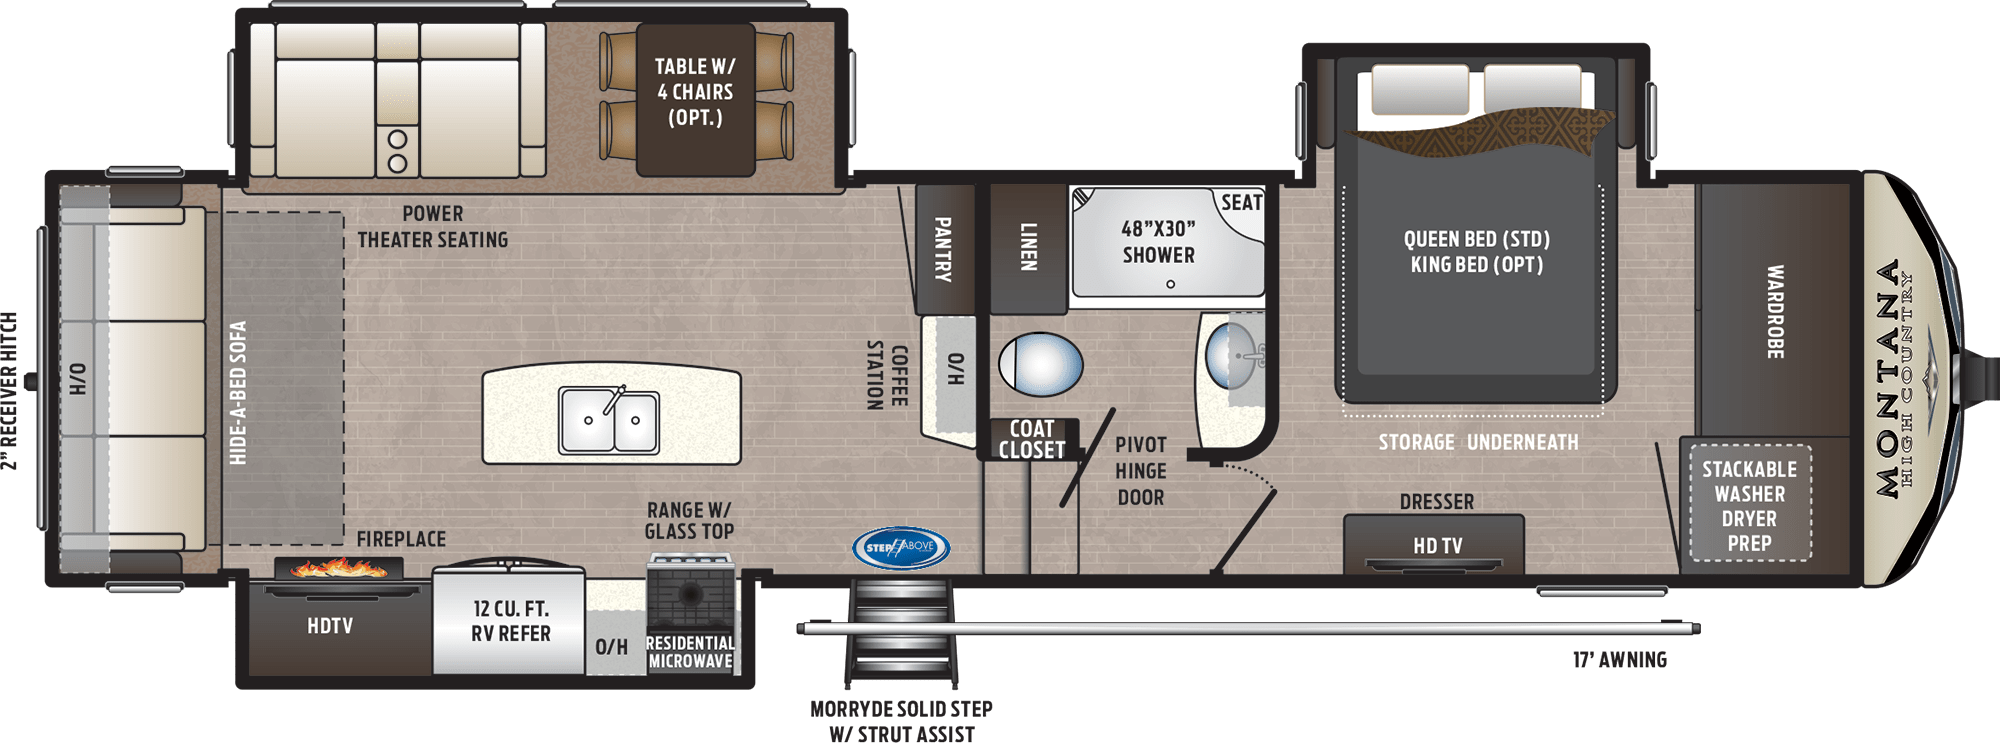 NEW 2019 Keystone MONTANA HIGH COUNTRY 305RL - American RV